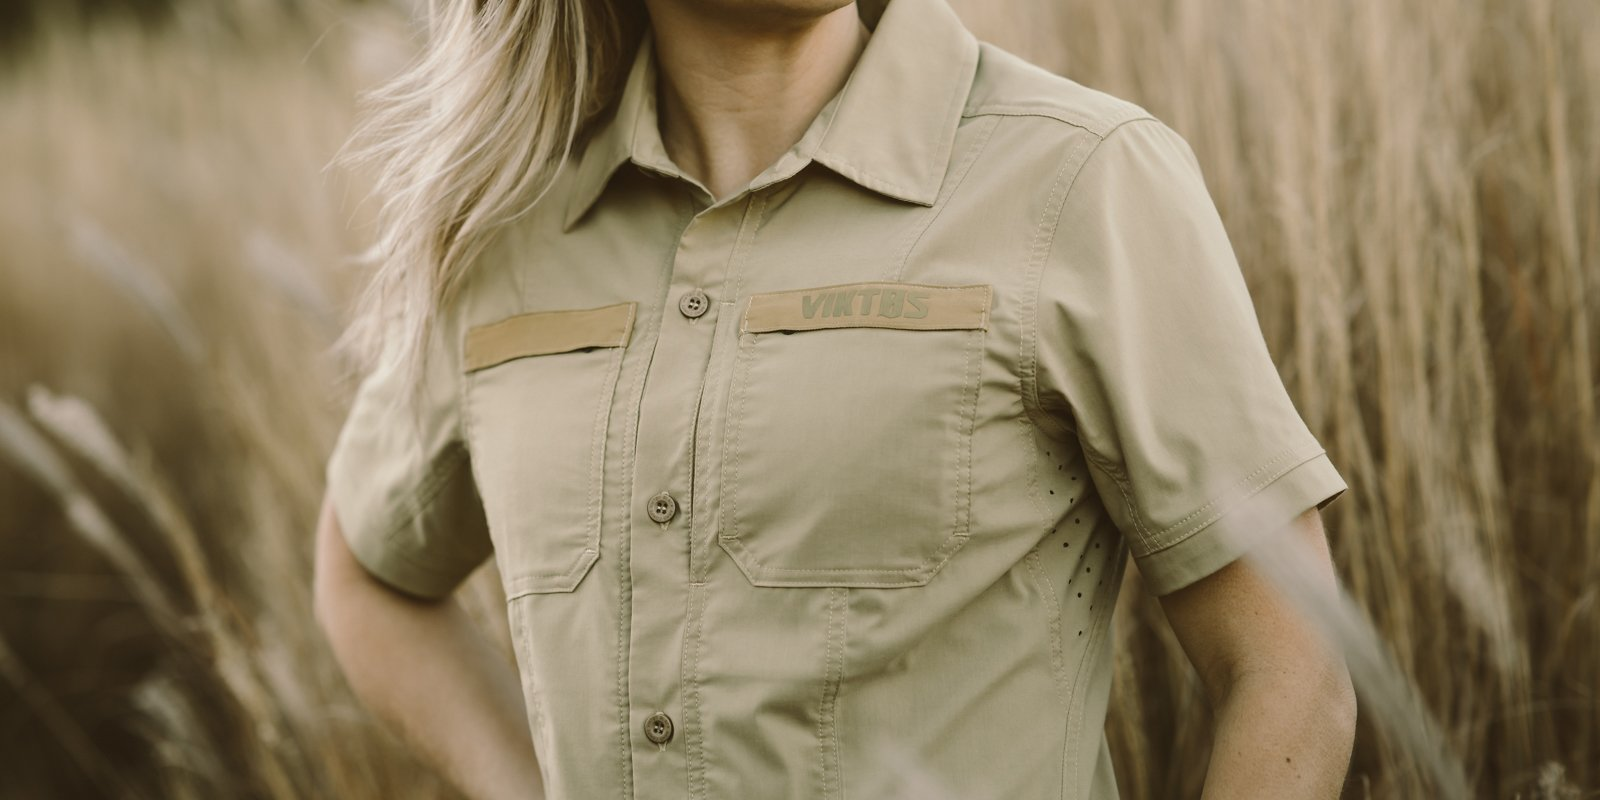 VIKTOS Tactically Inspired Clothing Womens Collection Tactical Gear Australia Supplier